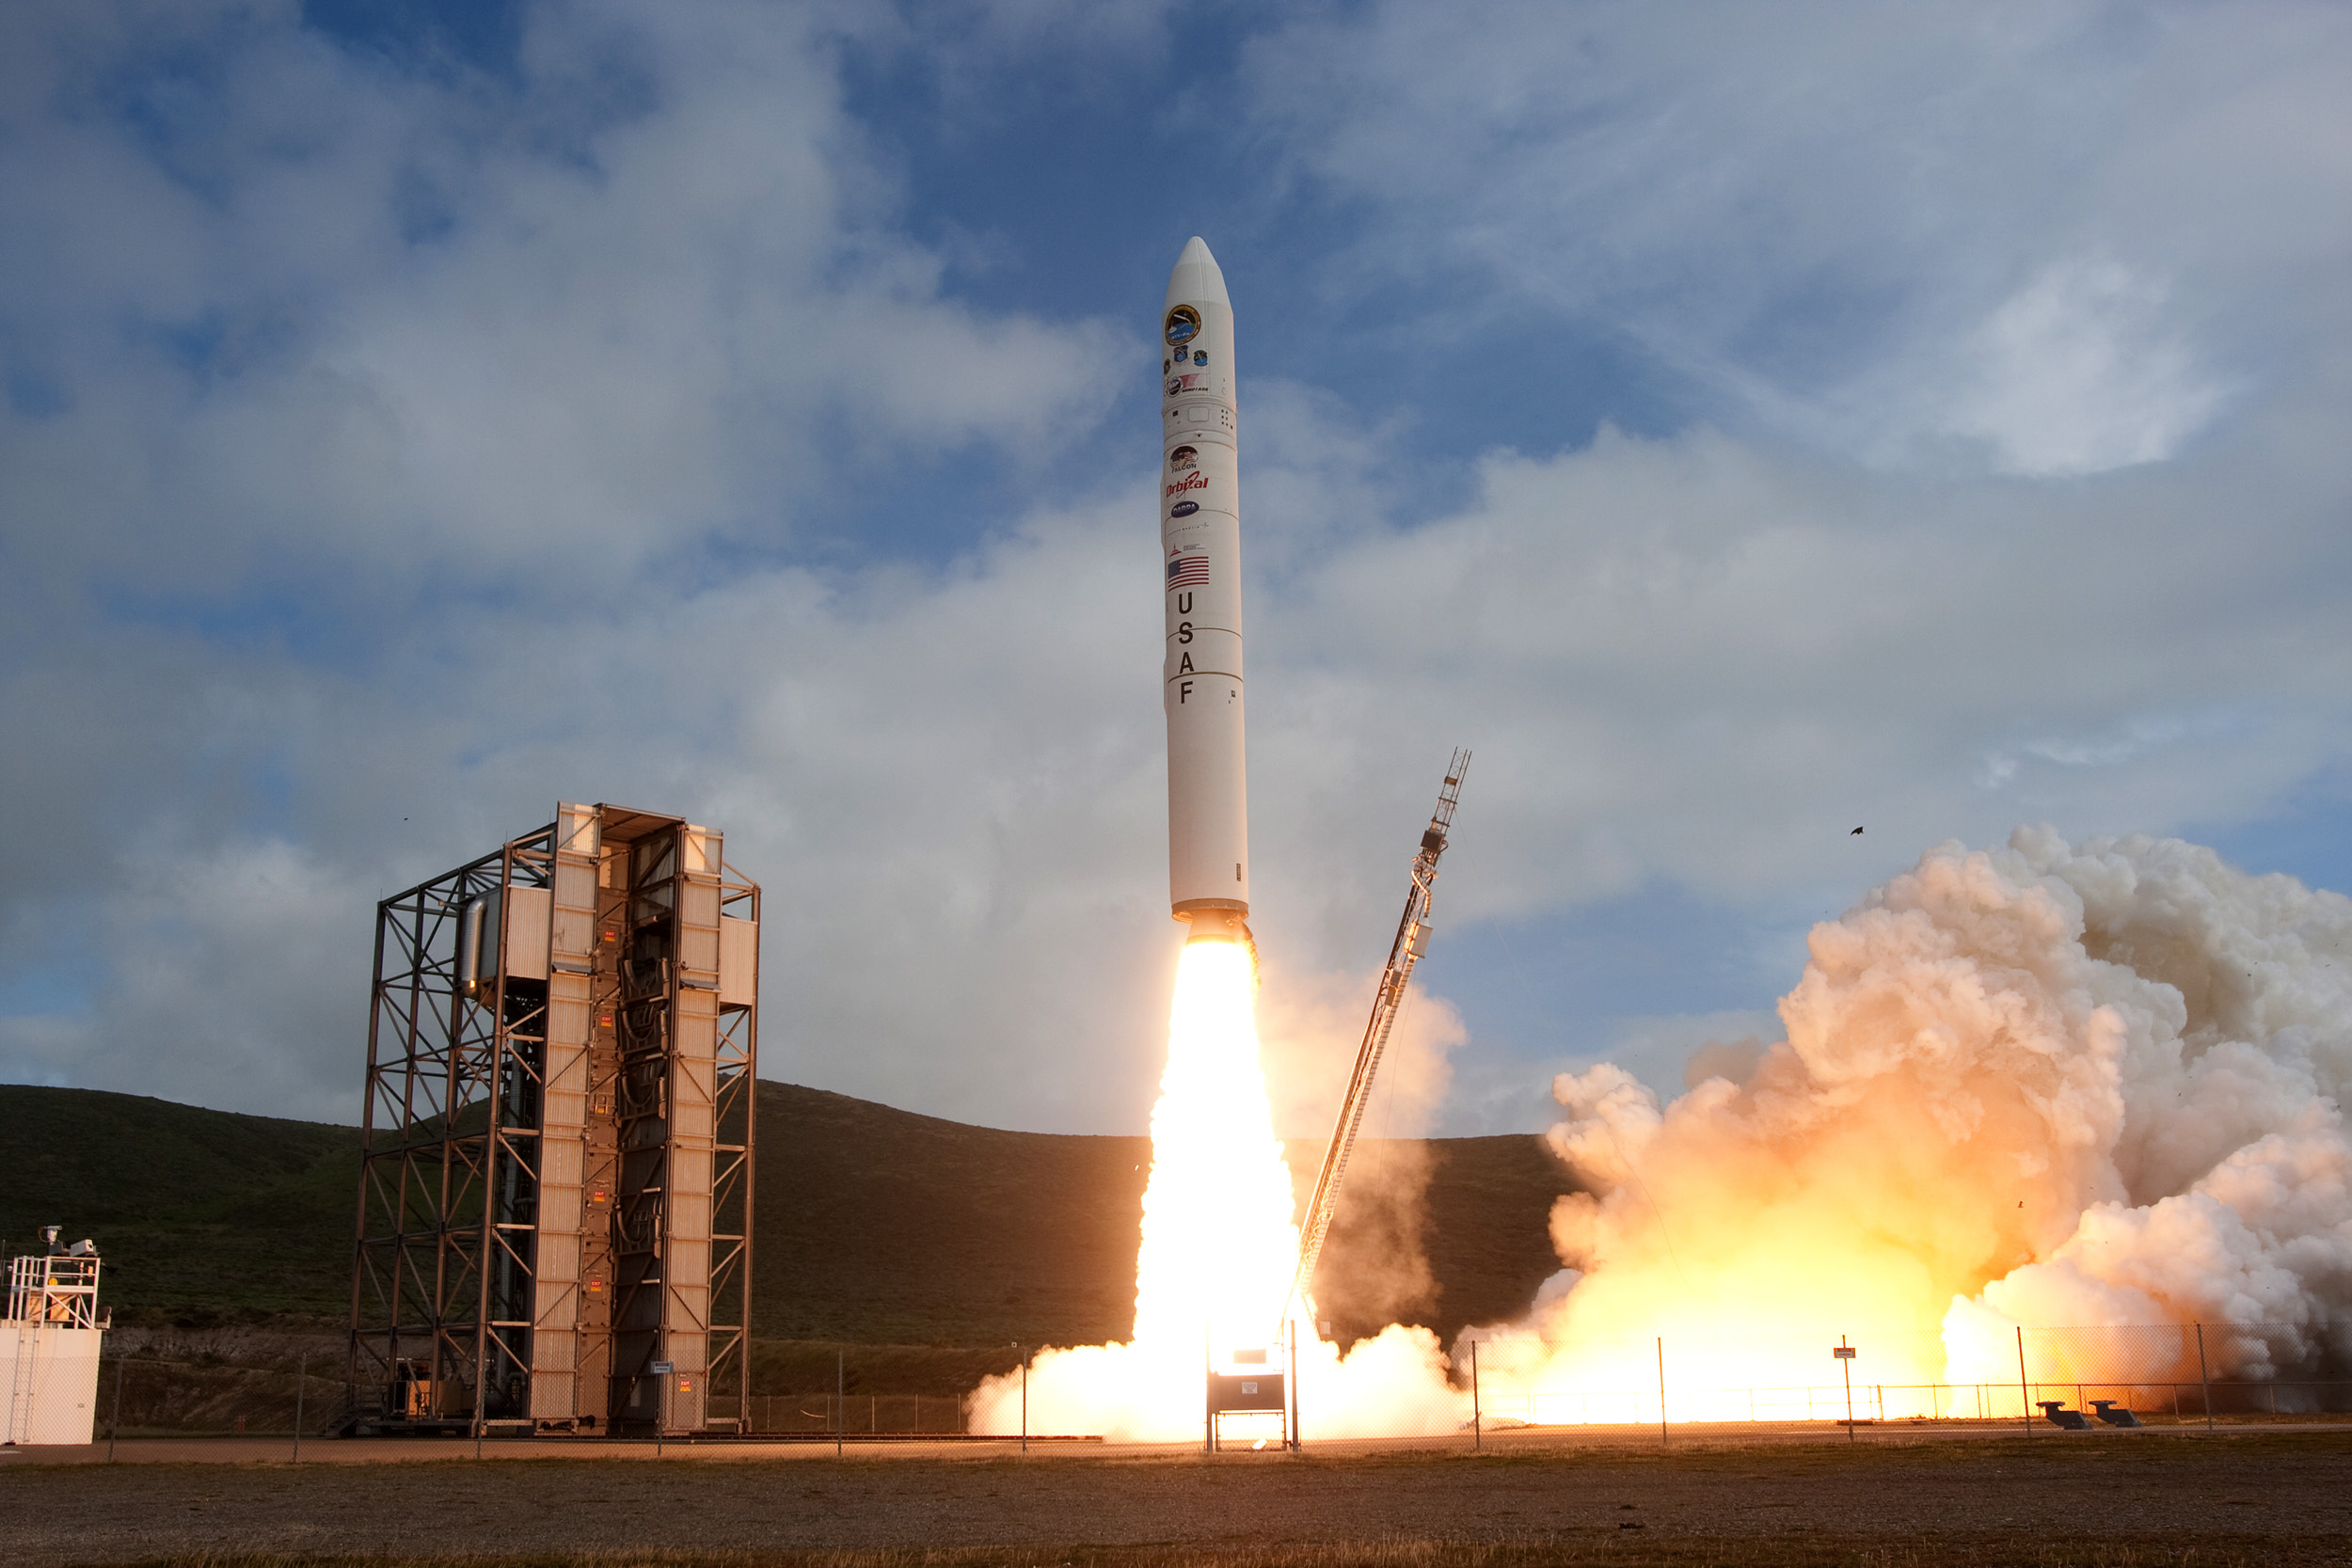 Vandenberg Air Force Base has been the site of many rocket launches in the past, including the Minotaur IV (pictured). Photo via Vandenberg Air Force Base.